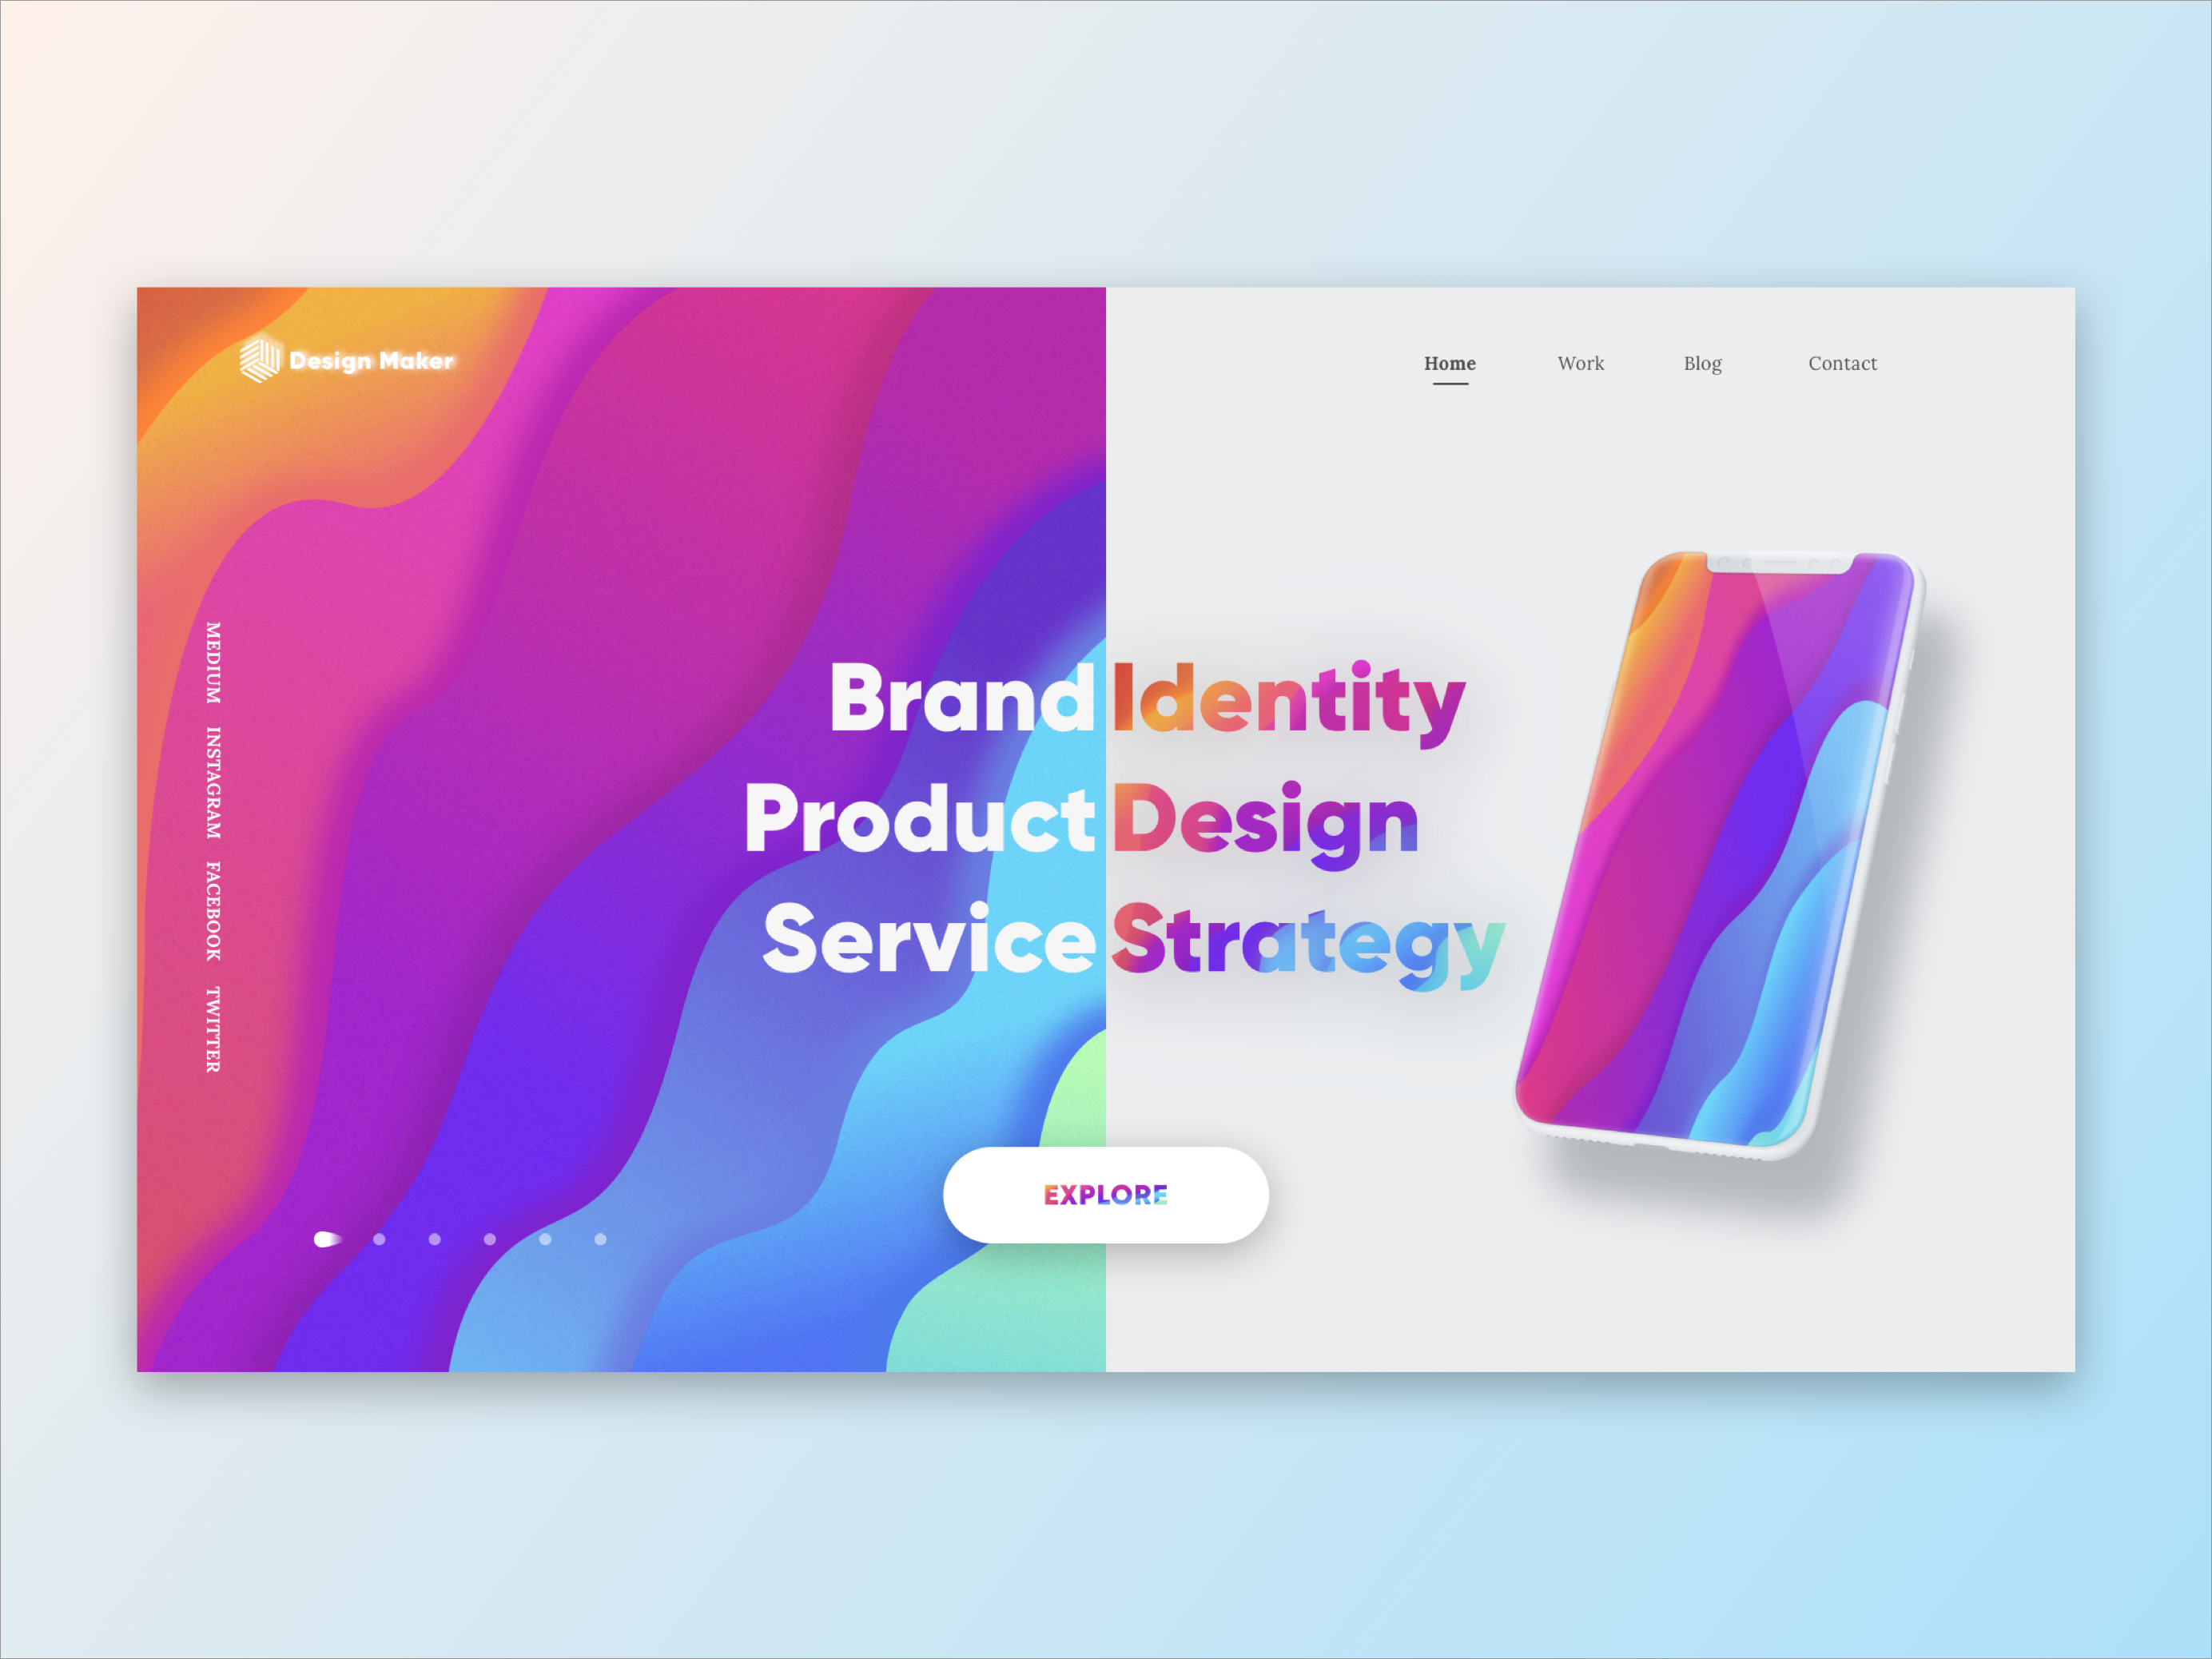 Charles Cheng / Projects / Web Layout Exploration | Dribbble